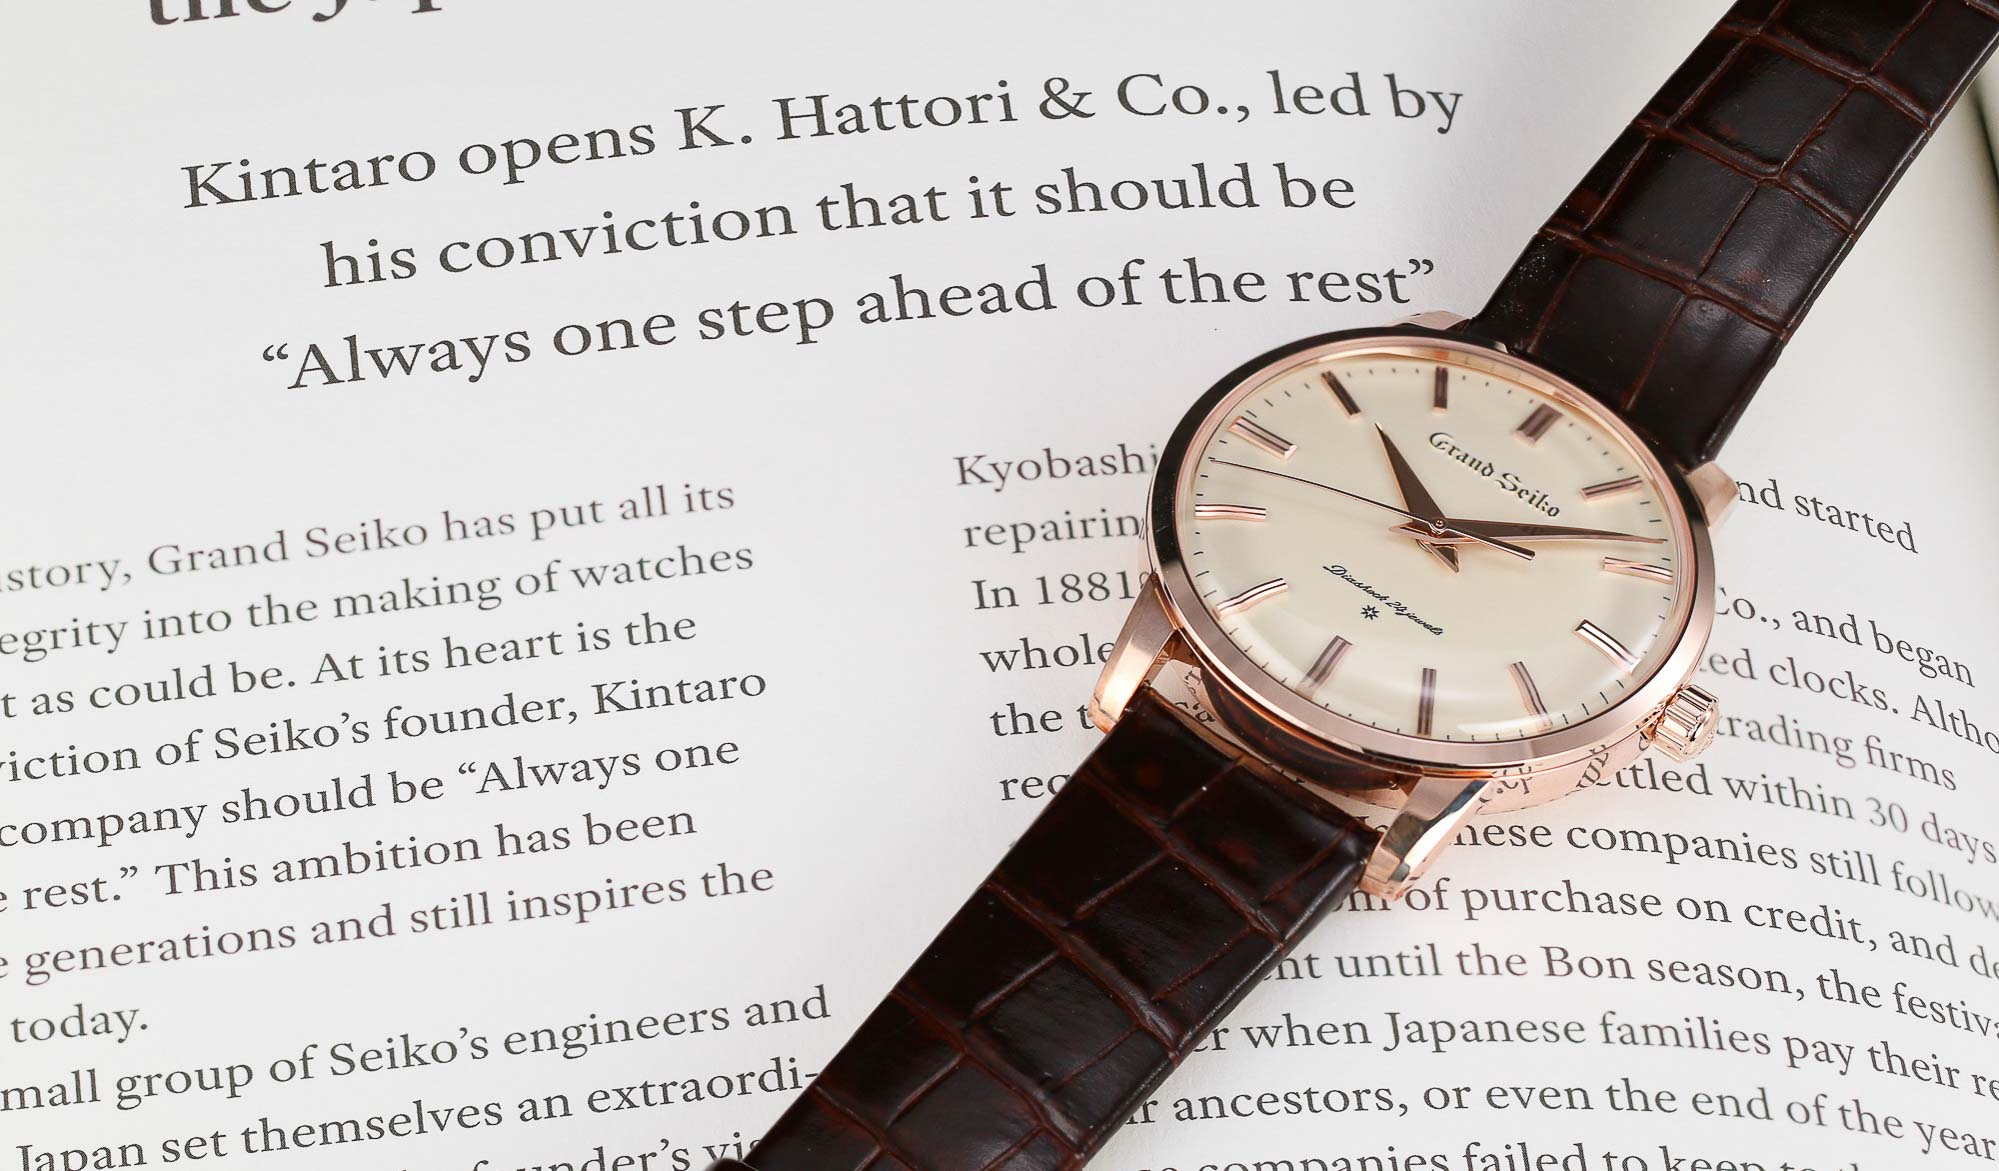 Grand Seiko SBGW260 golden dress watch laying on a book.